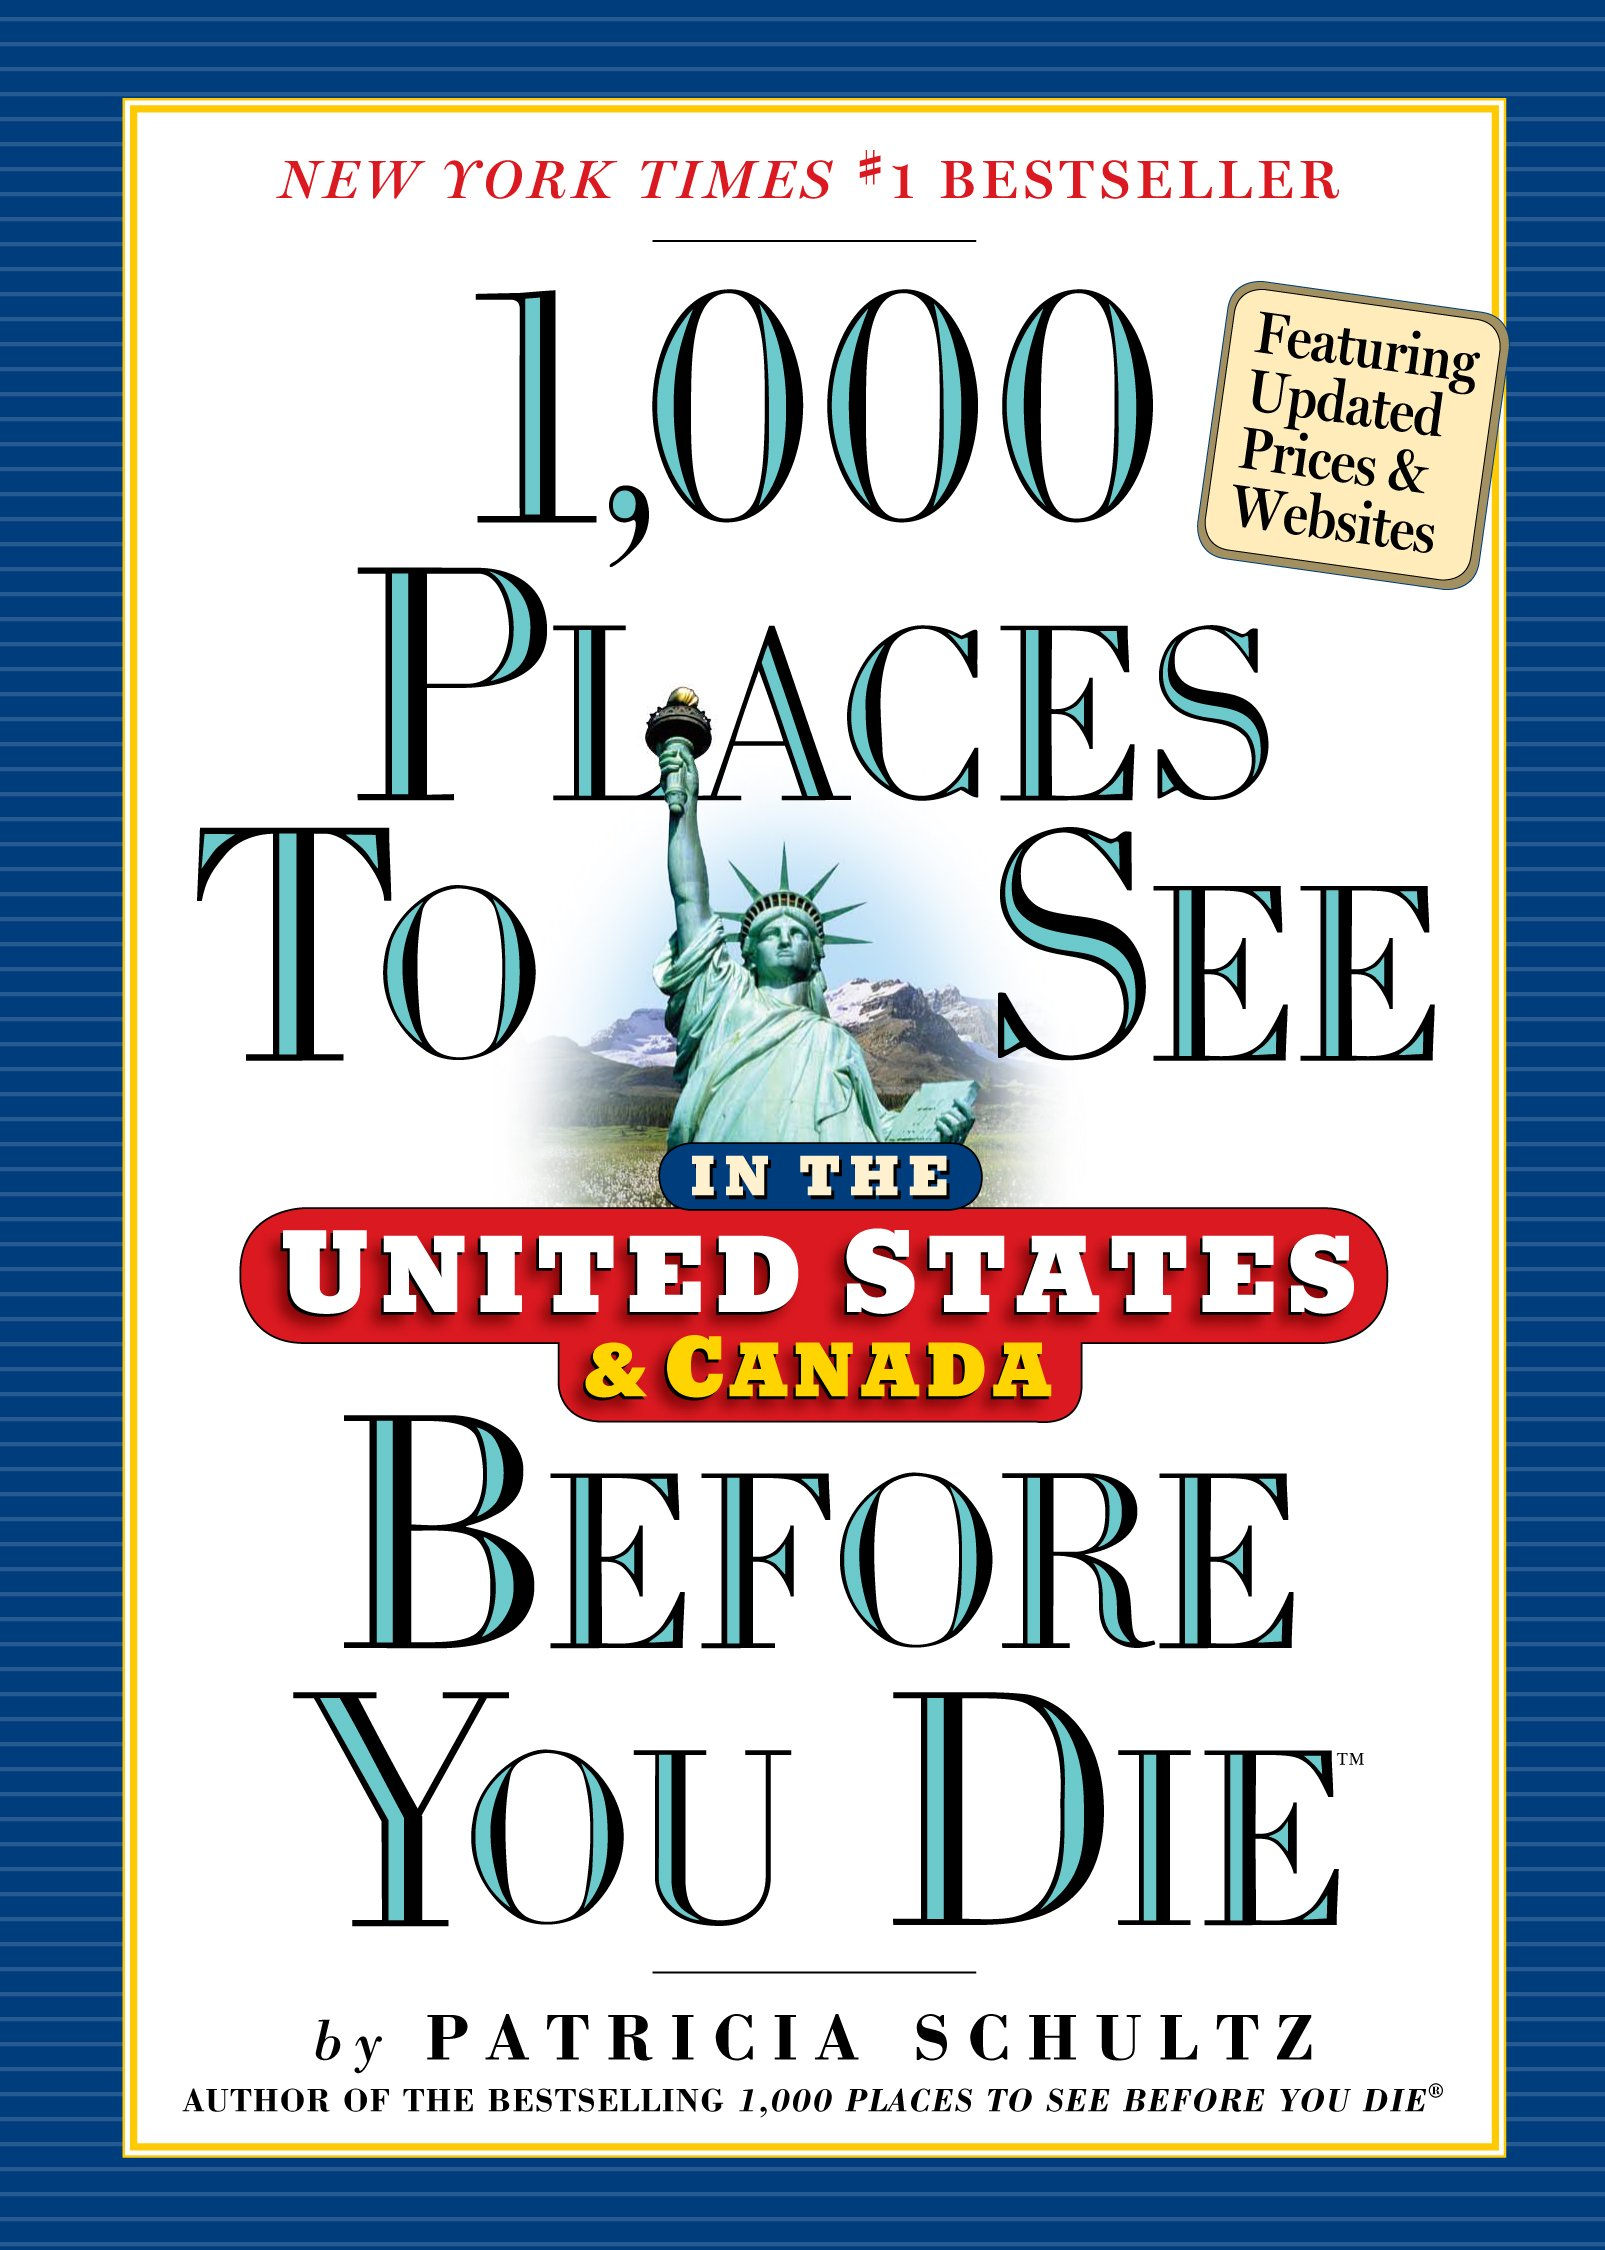 1, 000 Places to See in the United States and Canada Before You Die:  Patricia Schultz: 9780761163367: Amazon.com: Books